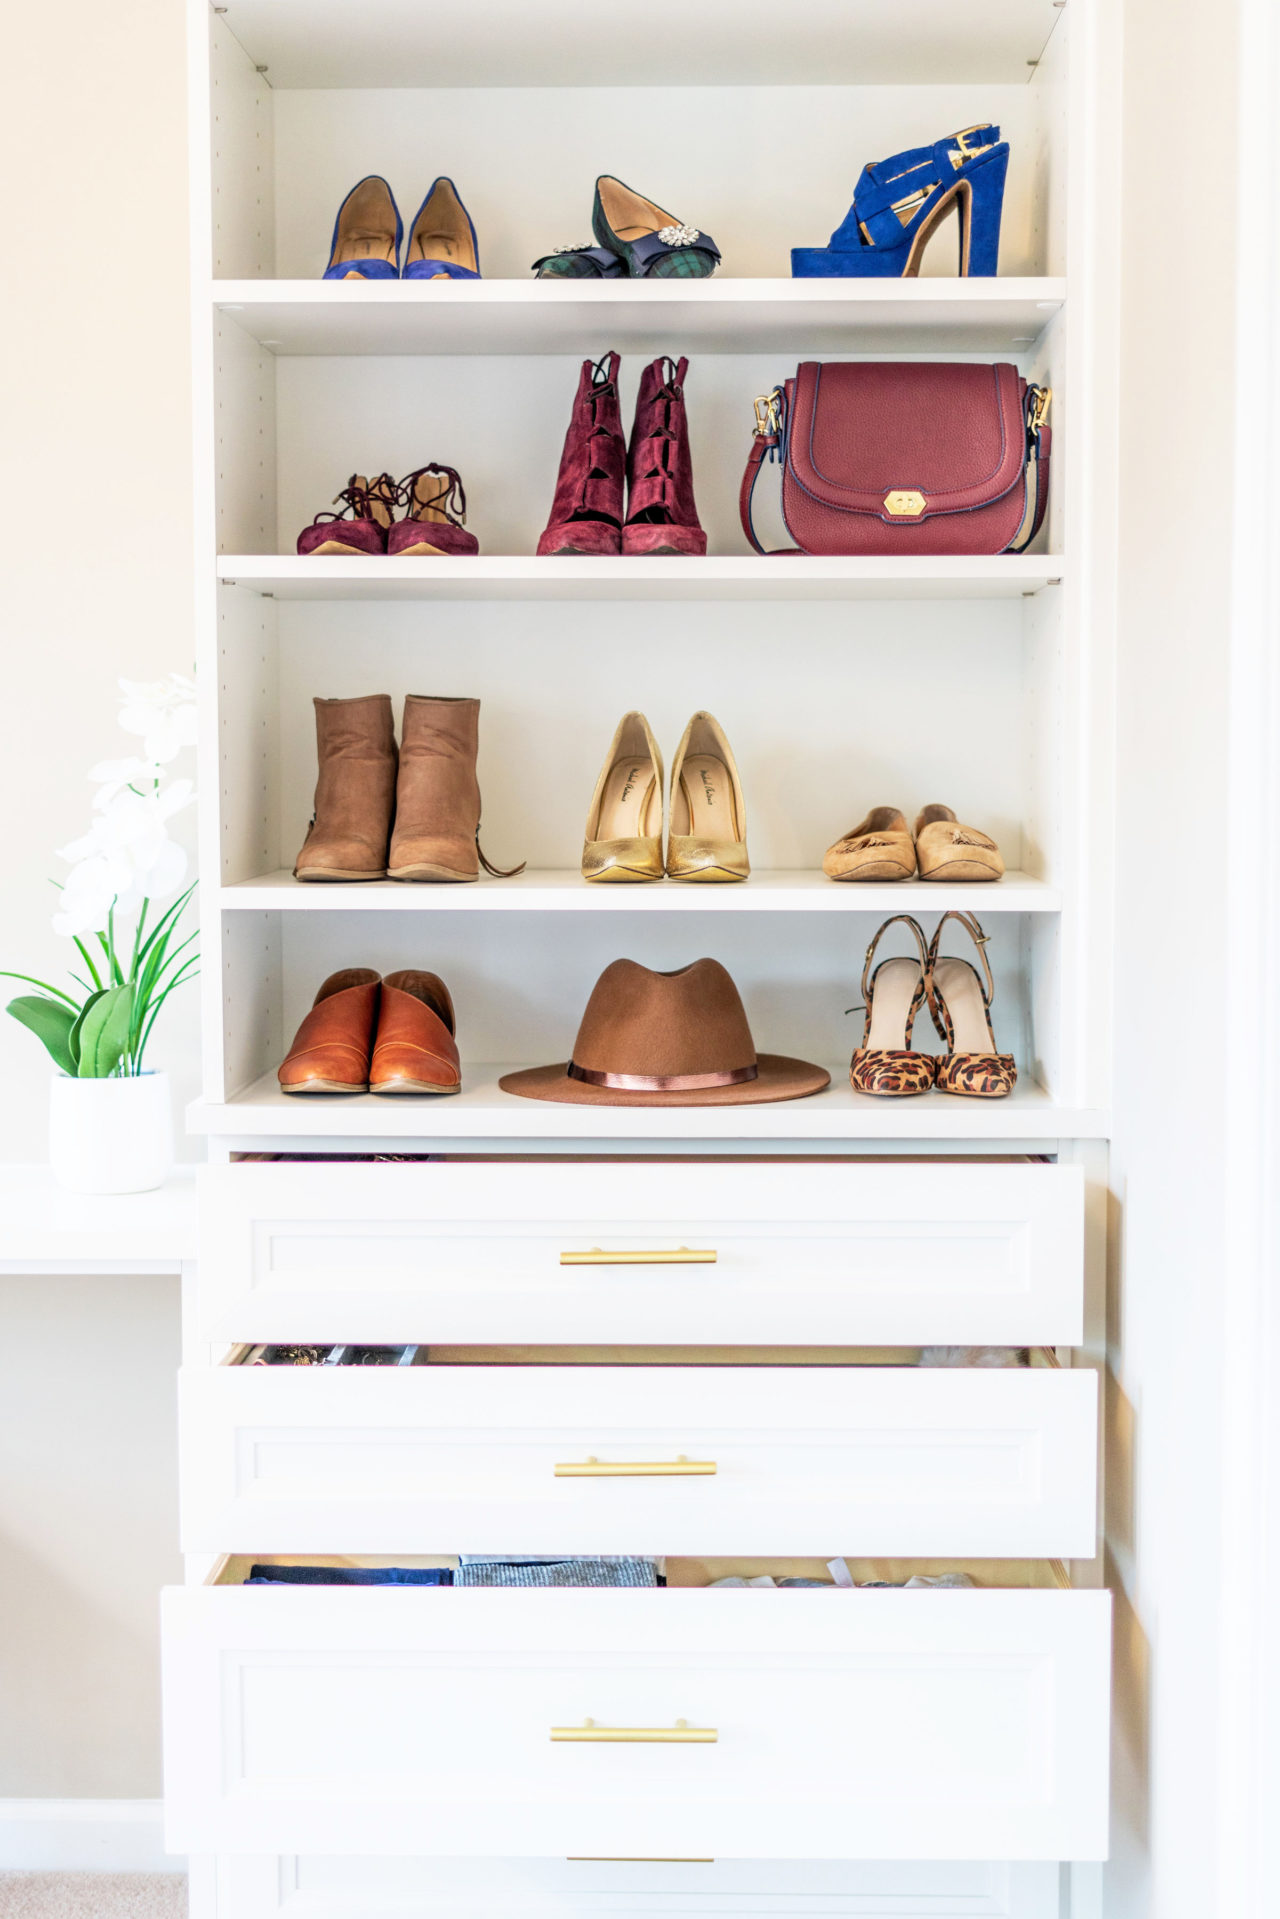 Shoe and accessory closet storage